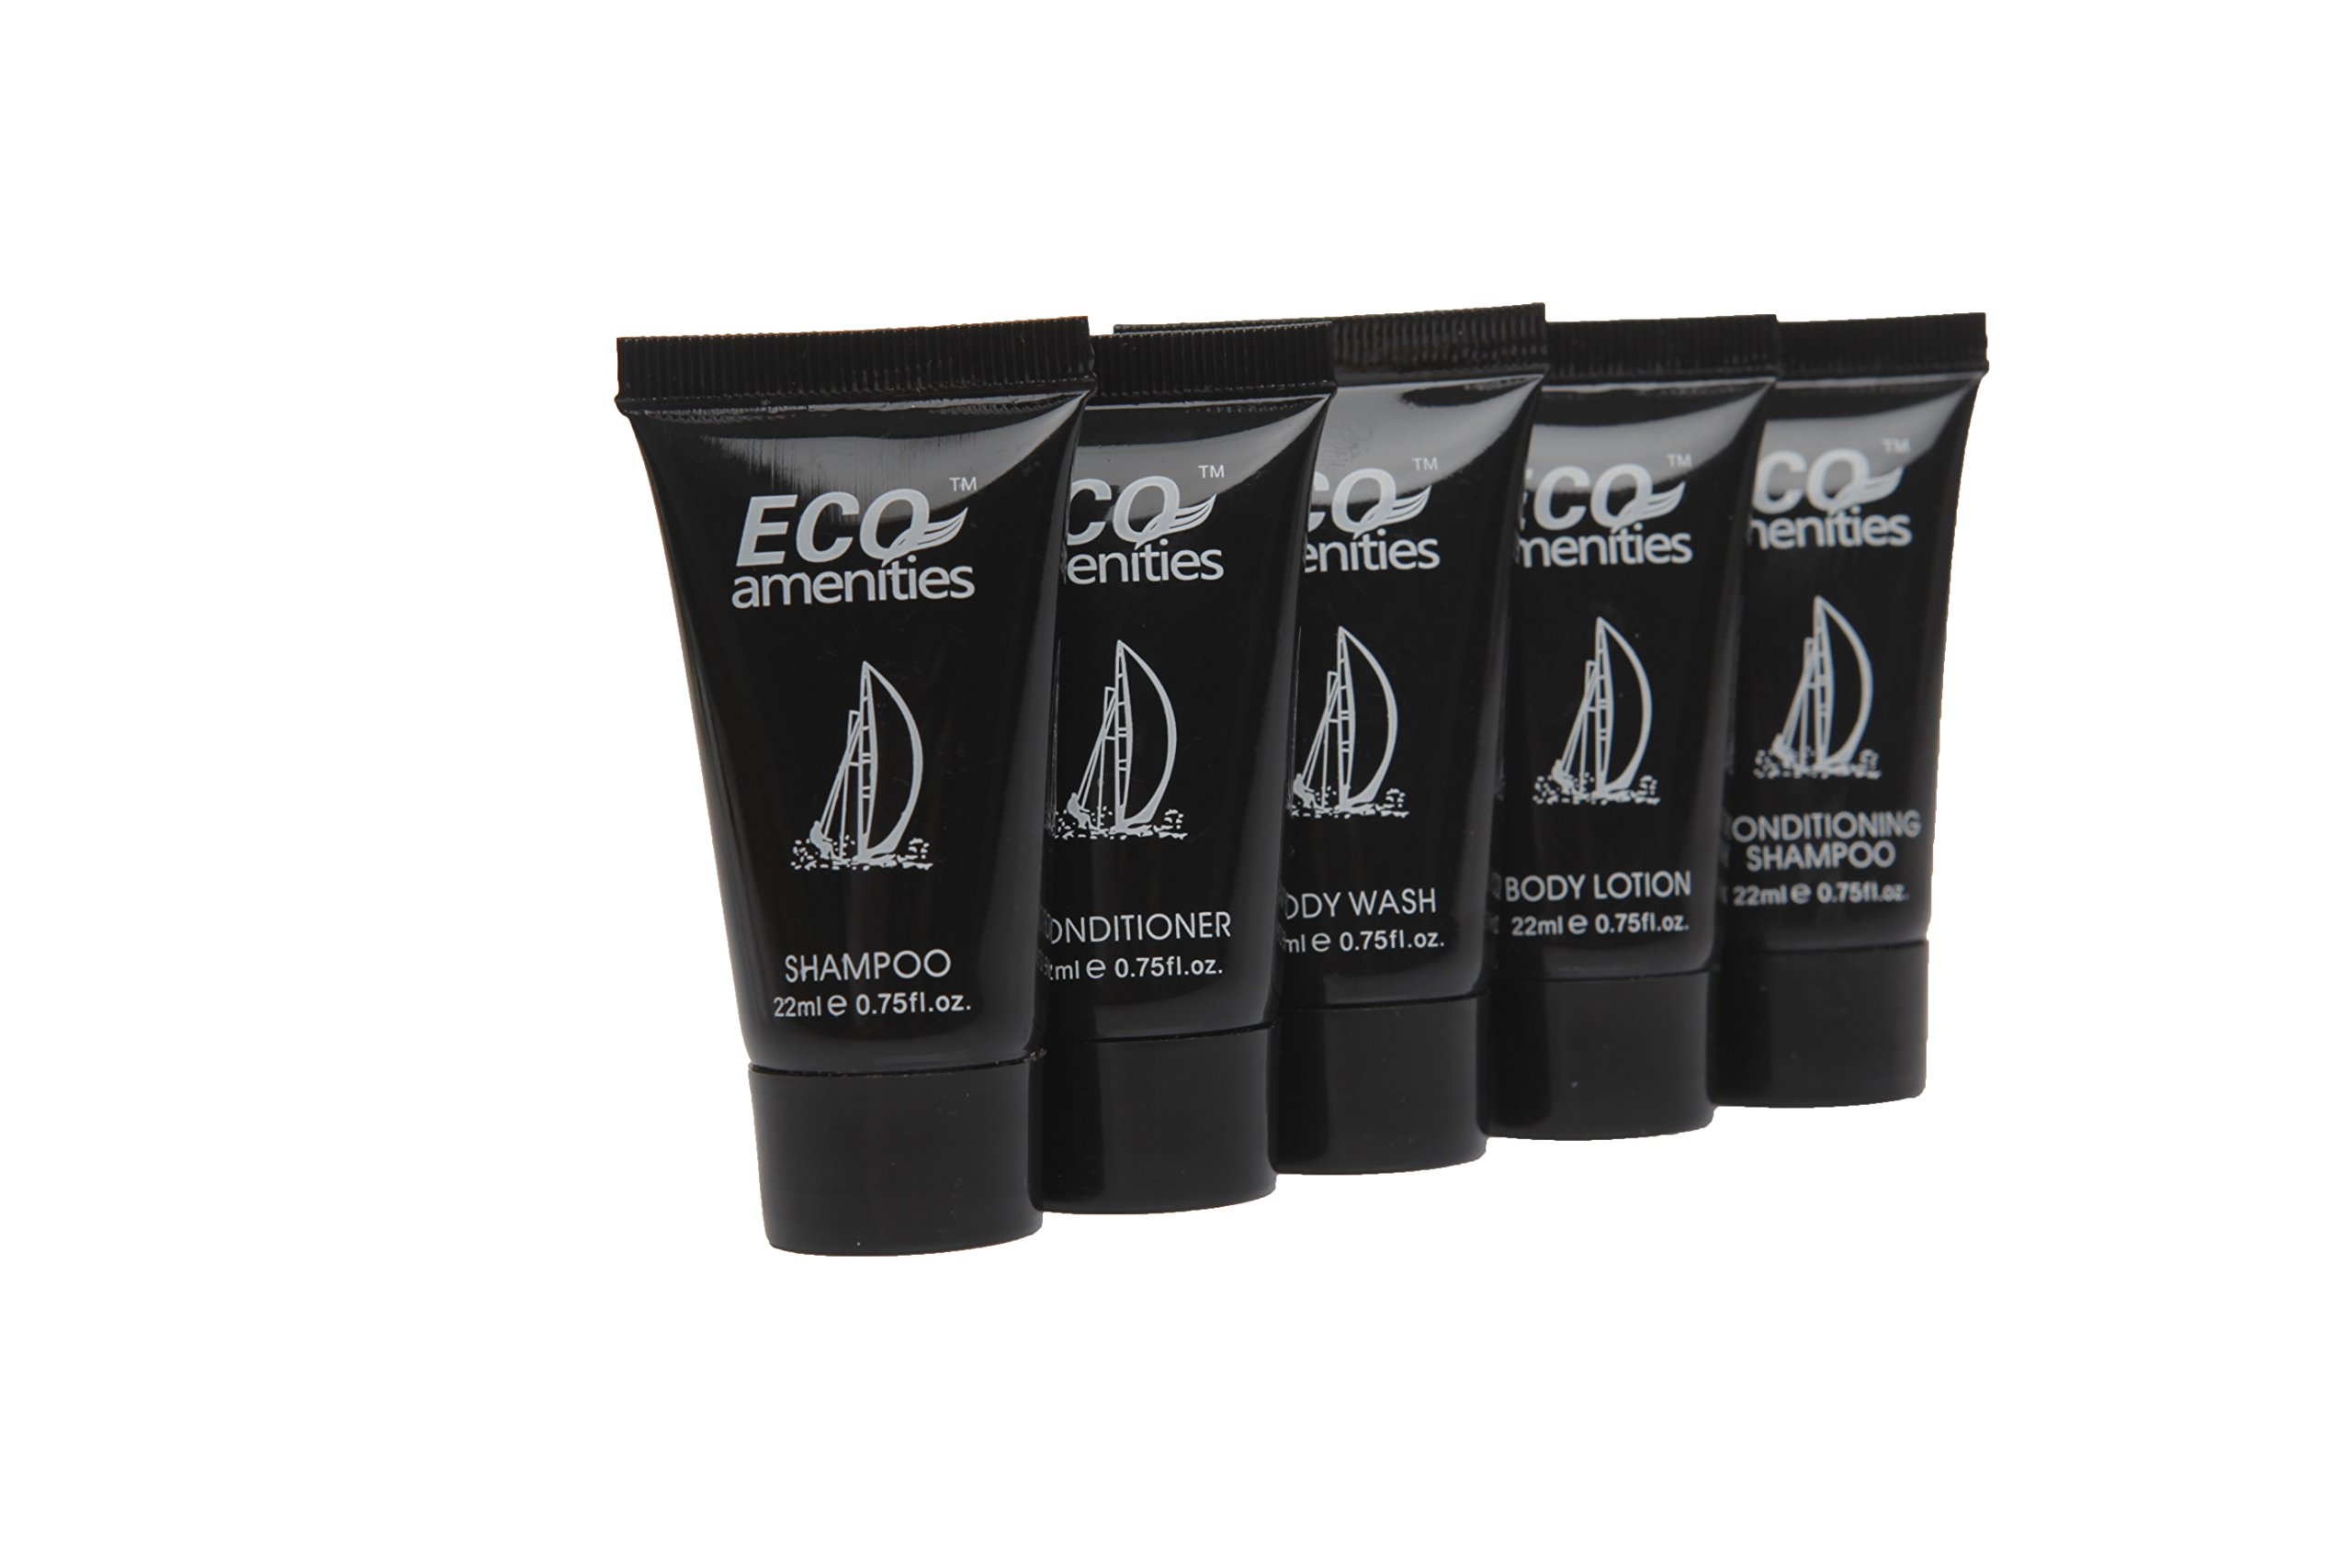 ECO AMENITIES Travel Size Body Lotion - ECO products 1